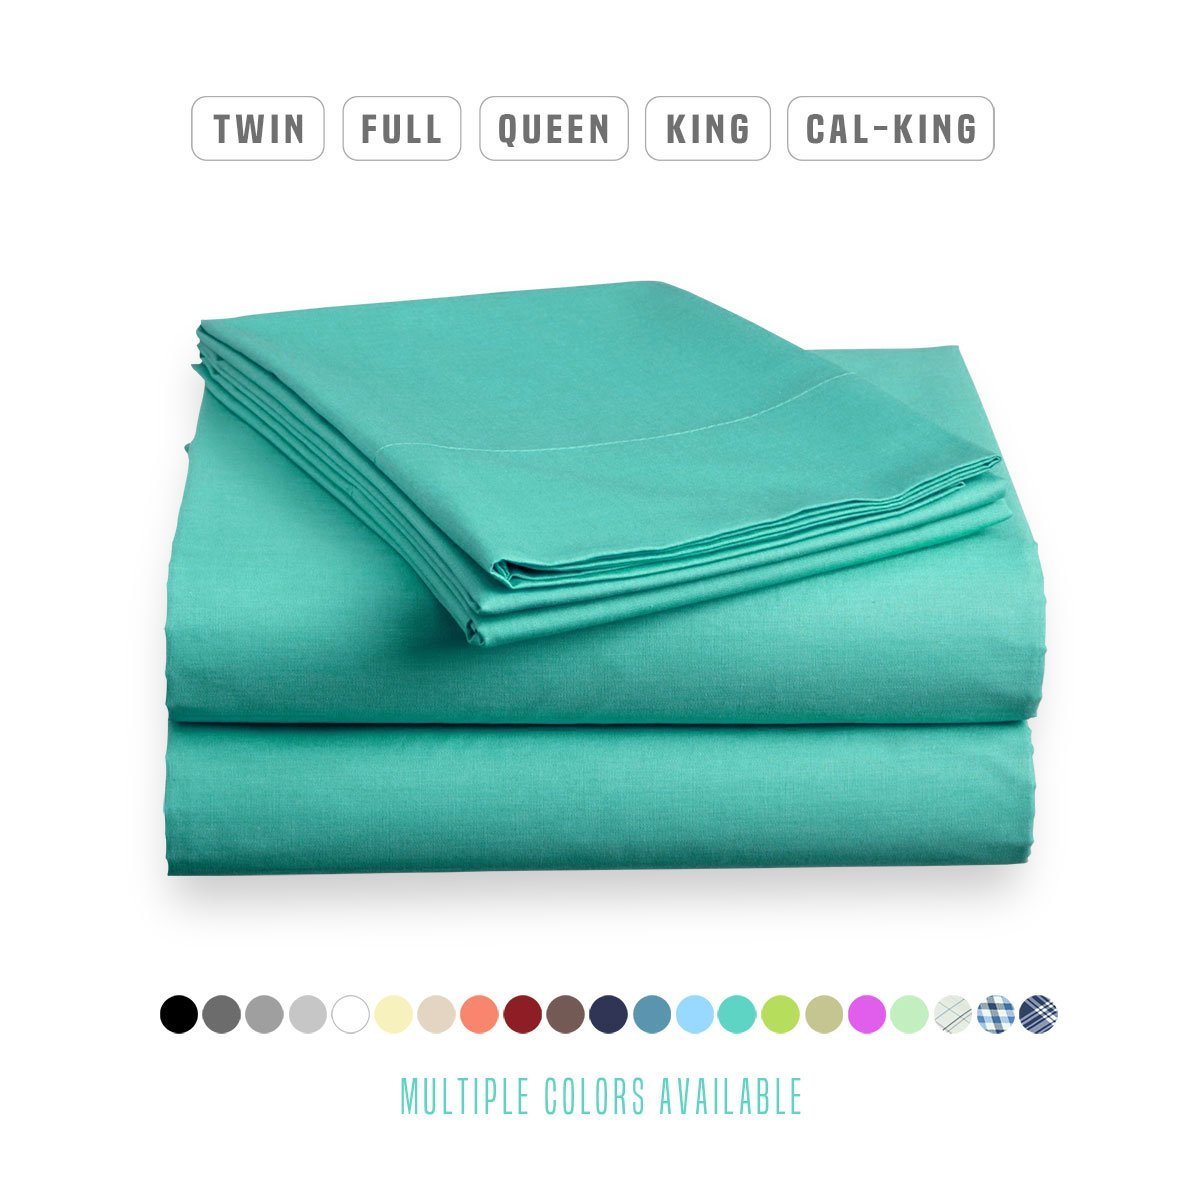 Luxe Bedding Bed Sheet Set - Brushed Microfiber 2000 Bedding - Wrinkle, Fade, Stain Resistant - Hypoallergenic - 4 Piece - Unique Christmas Presents for family (Queen, Turquoise)